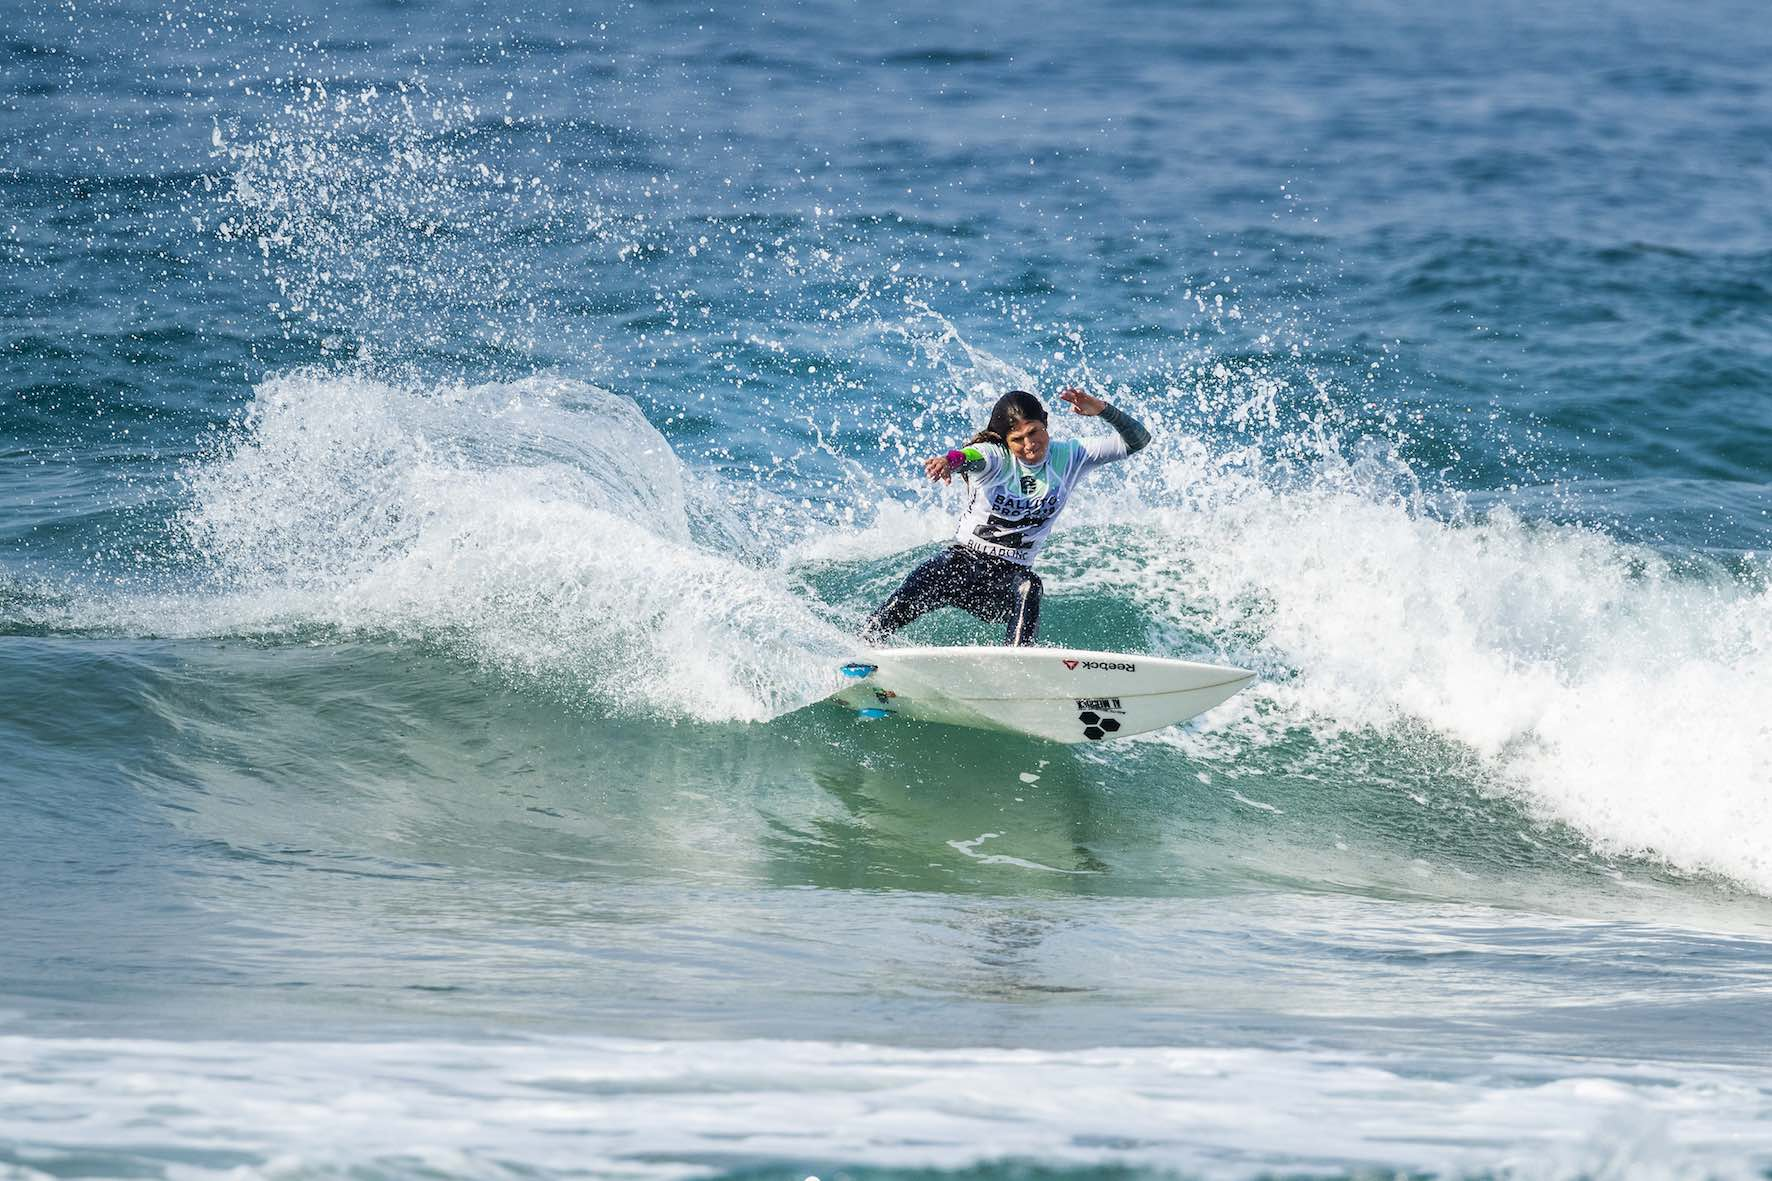 Sofia Mulanovich surfing her way to victory at the 2018 Ballito Pro